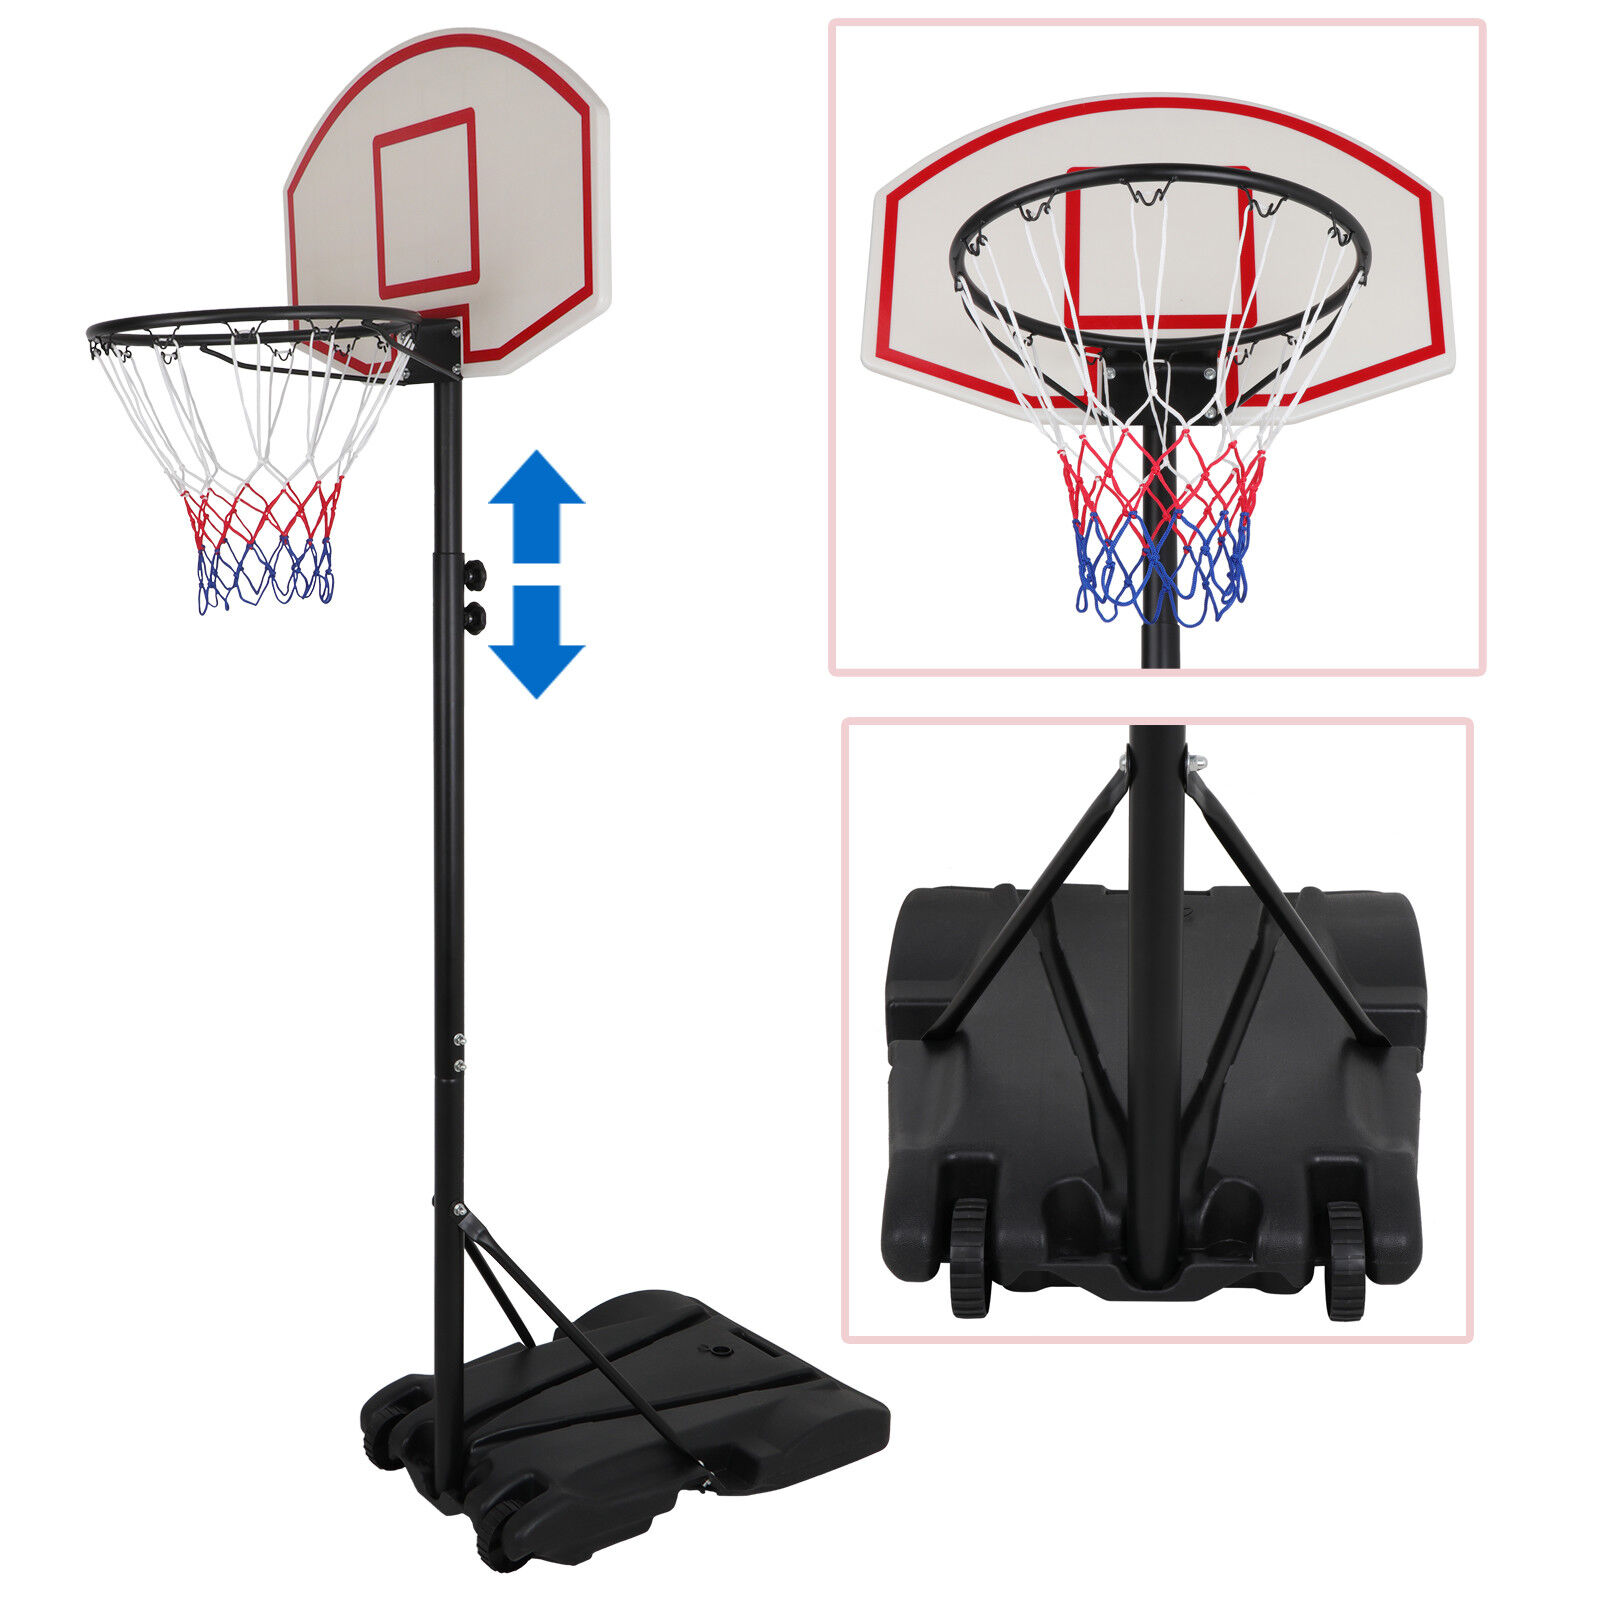 Greensen Basketball System Portable Basketball Hoop /& Goal with Backboard and Wheels Height Adjustable 1.9-3.05 m//6.2-10ft Removeable Basketball Hoop System for Kids Youth Adult Family Indoor